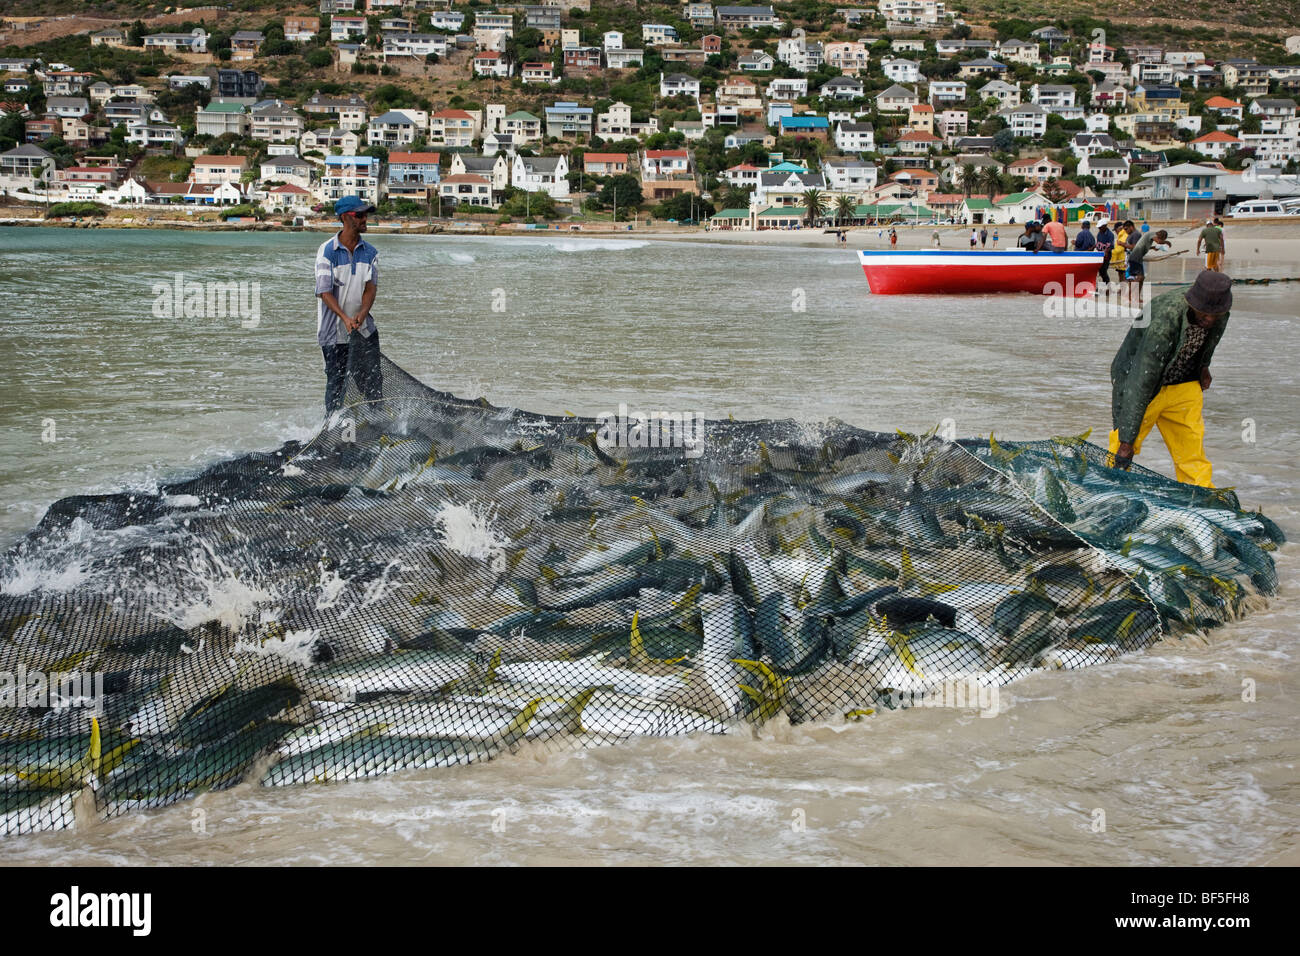 Fishermen dragging net full of yellowtail amberjack fish onto beach. Fishoek   near Cape Town South Africa - Stock Image